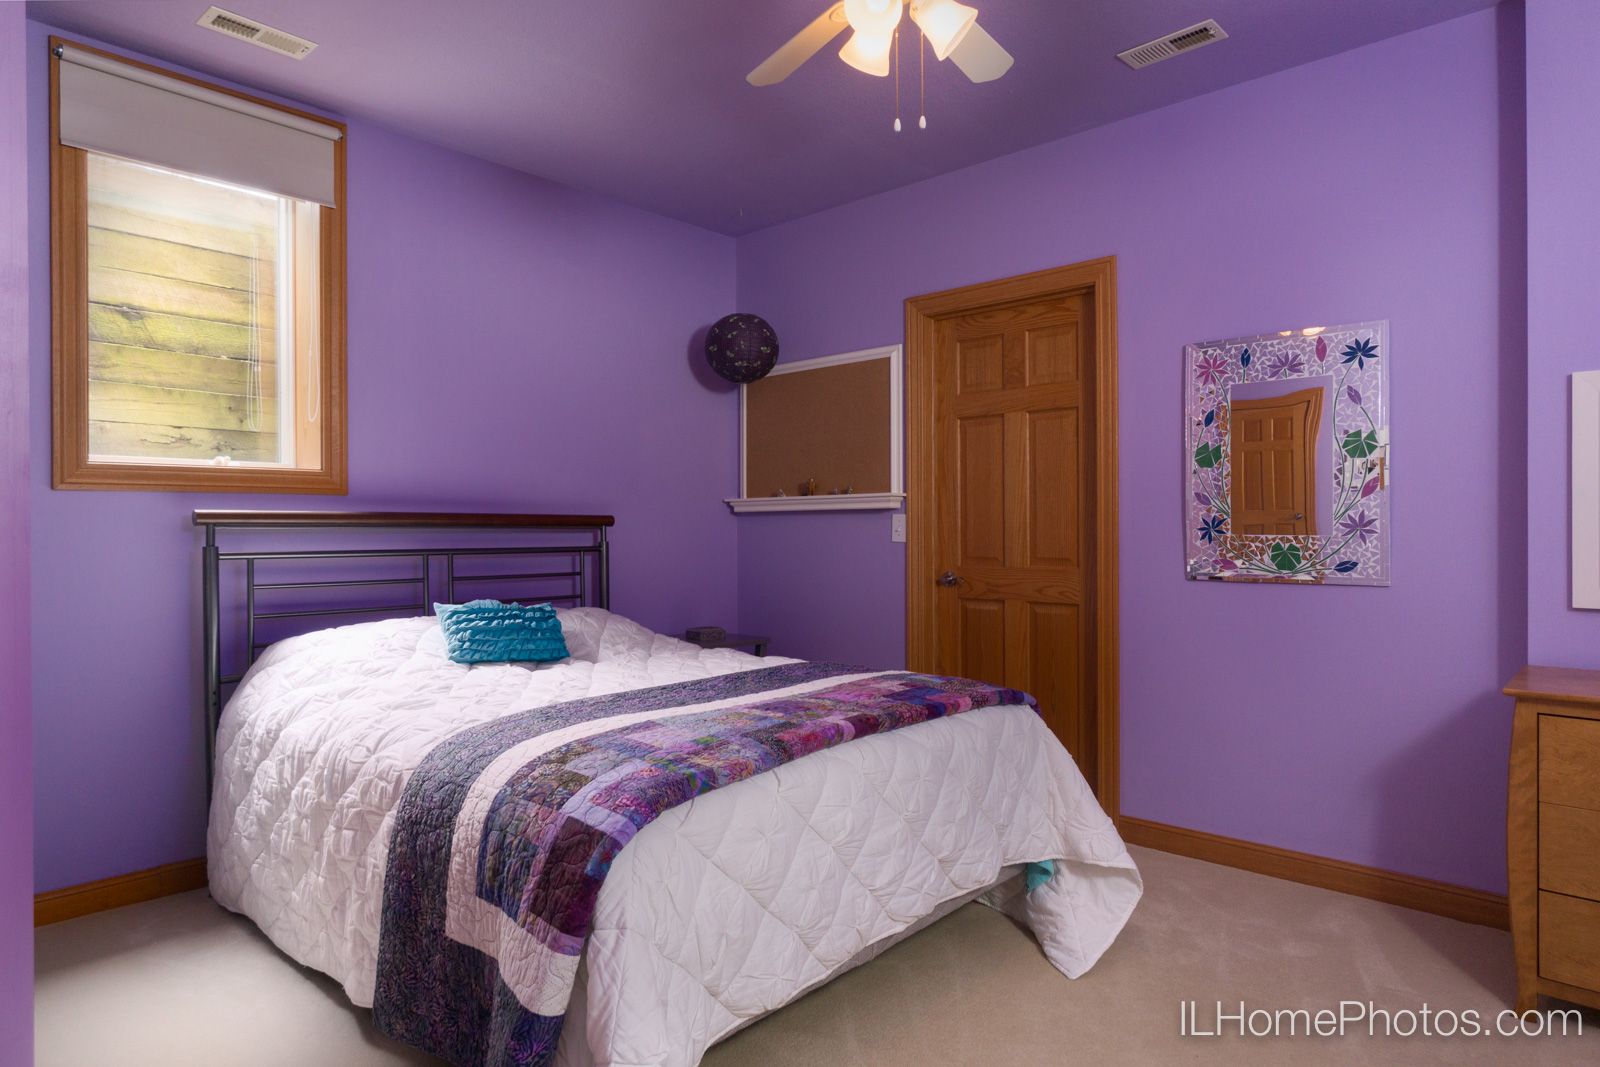 Interior girl's bedroom photograph for real estate :: Illinois Home Photography by Michael Gowin, Lincoln, IL